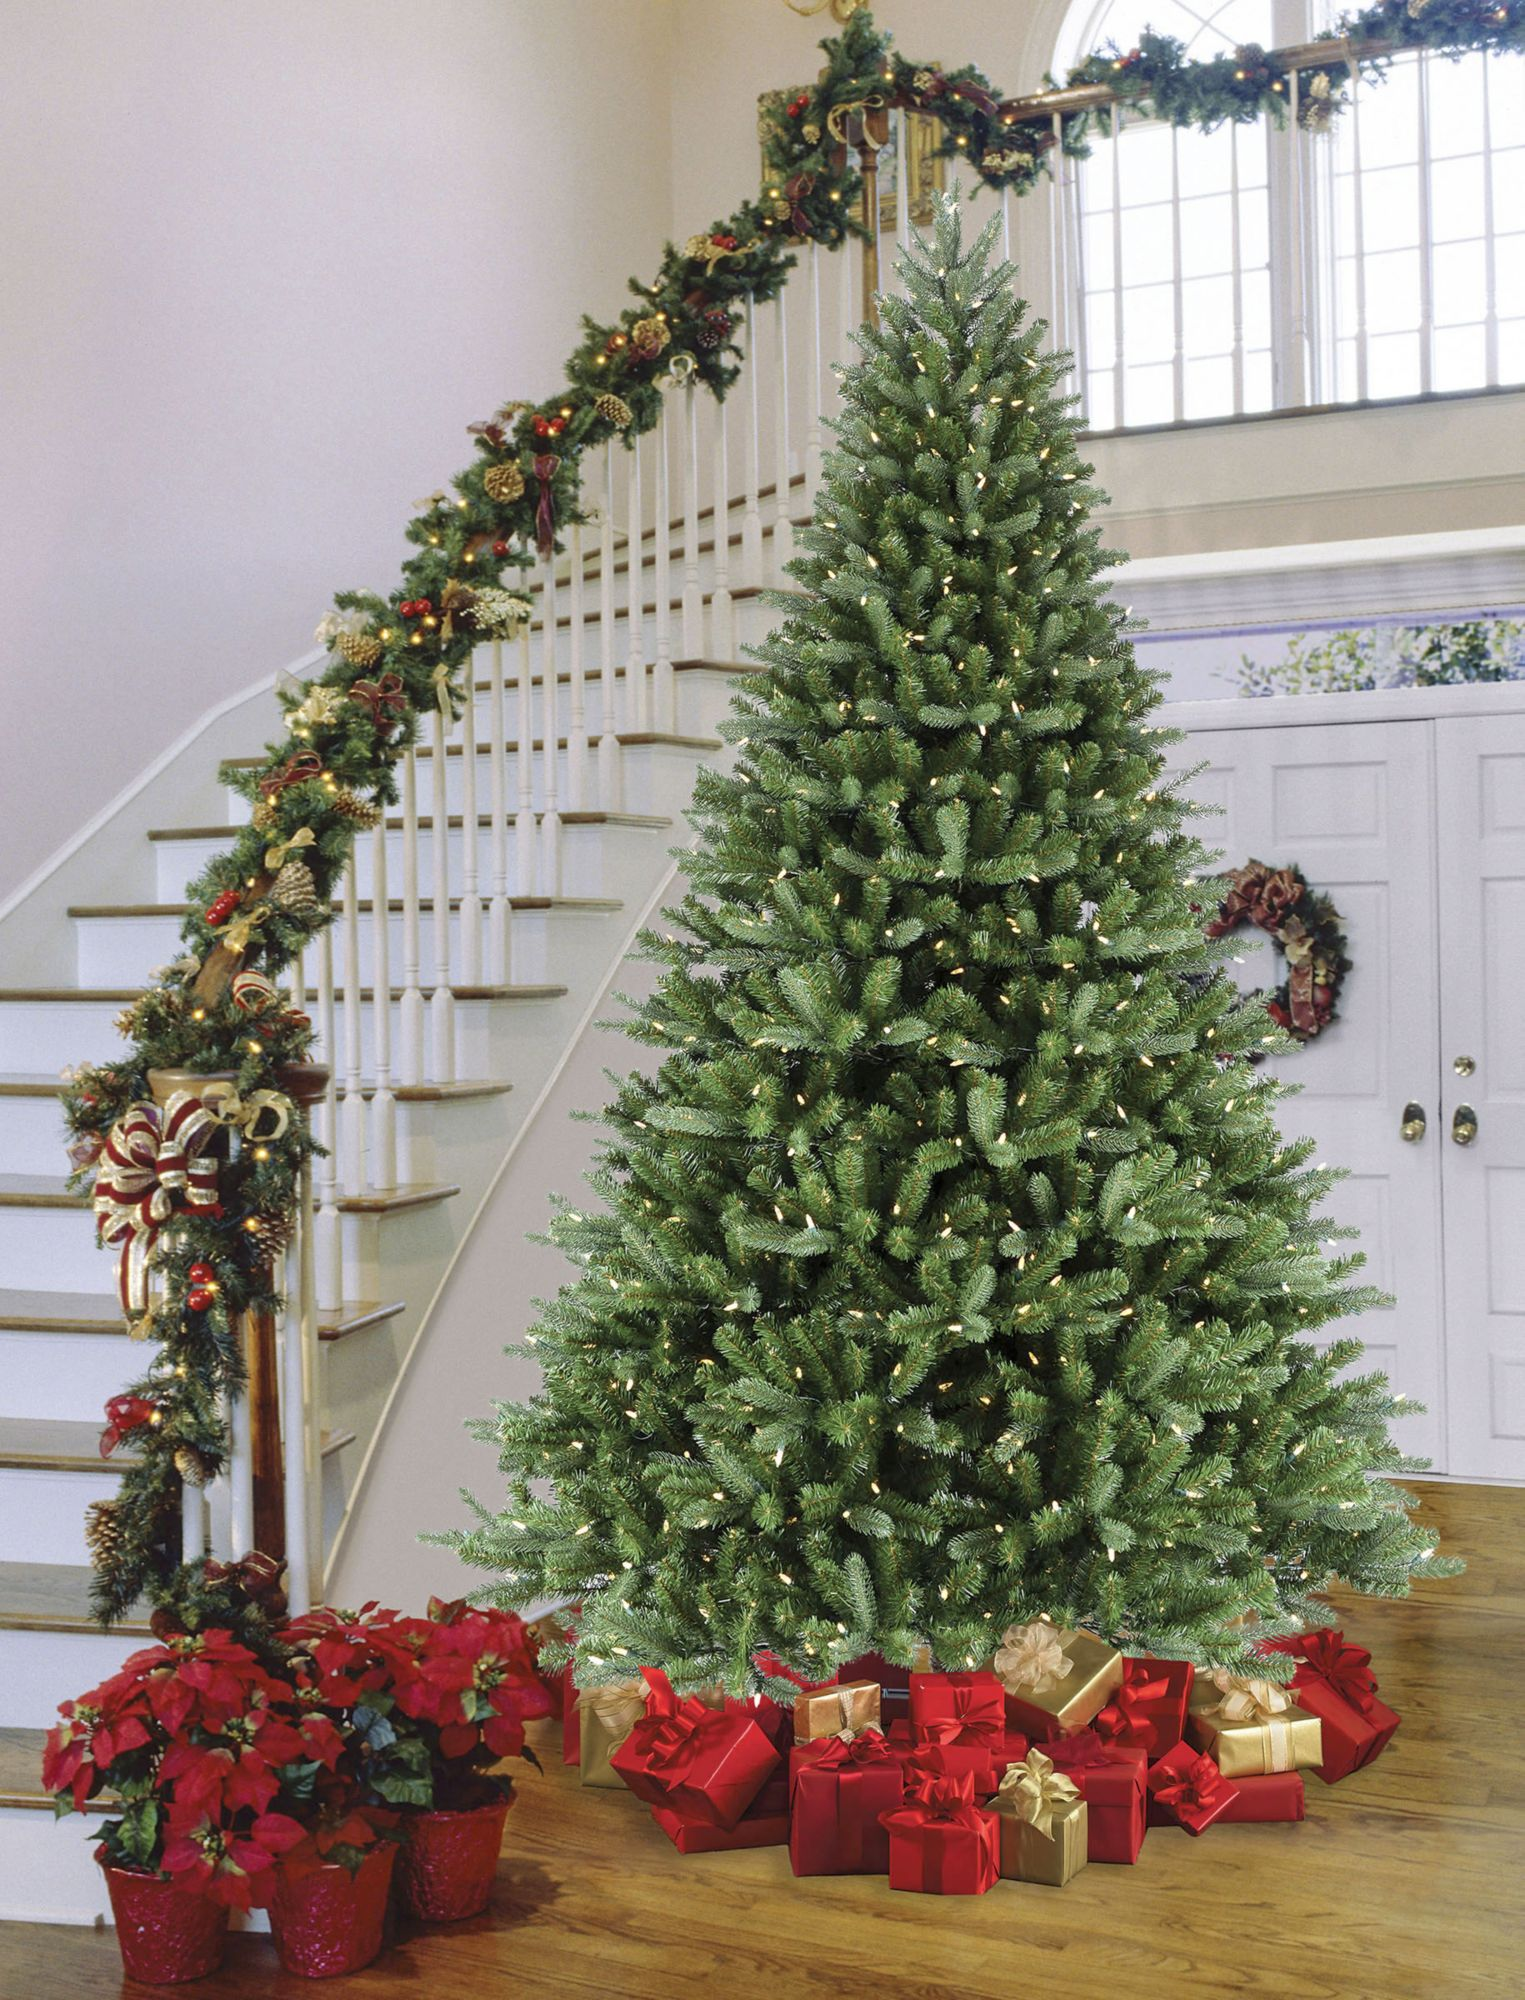 Sylvania 9 8 Function Color Changing Prelit Led Tree With Foot Pedal Bjs Wholesale Club